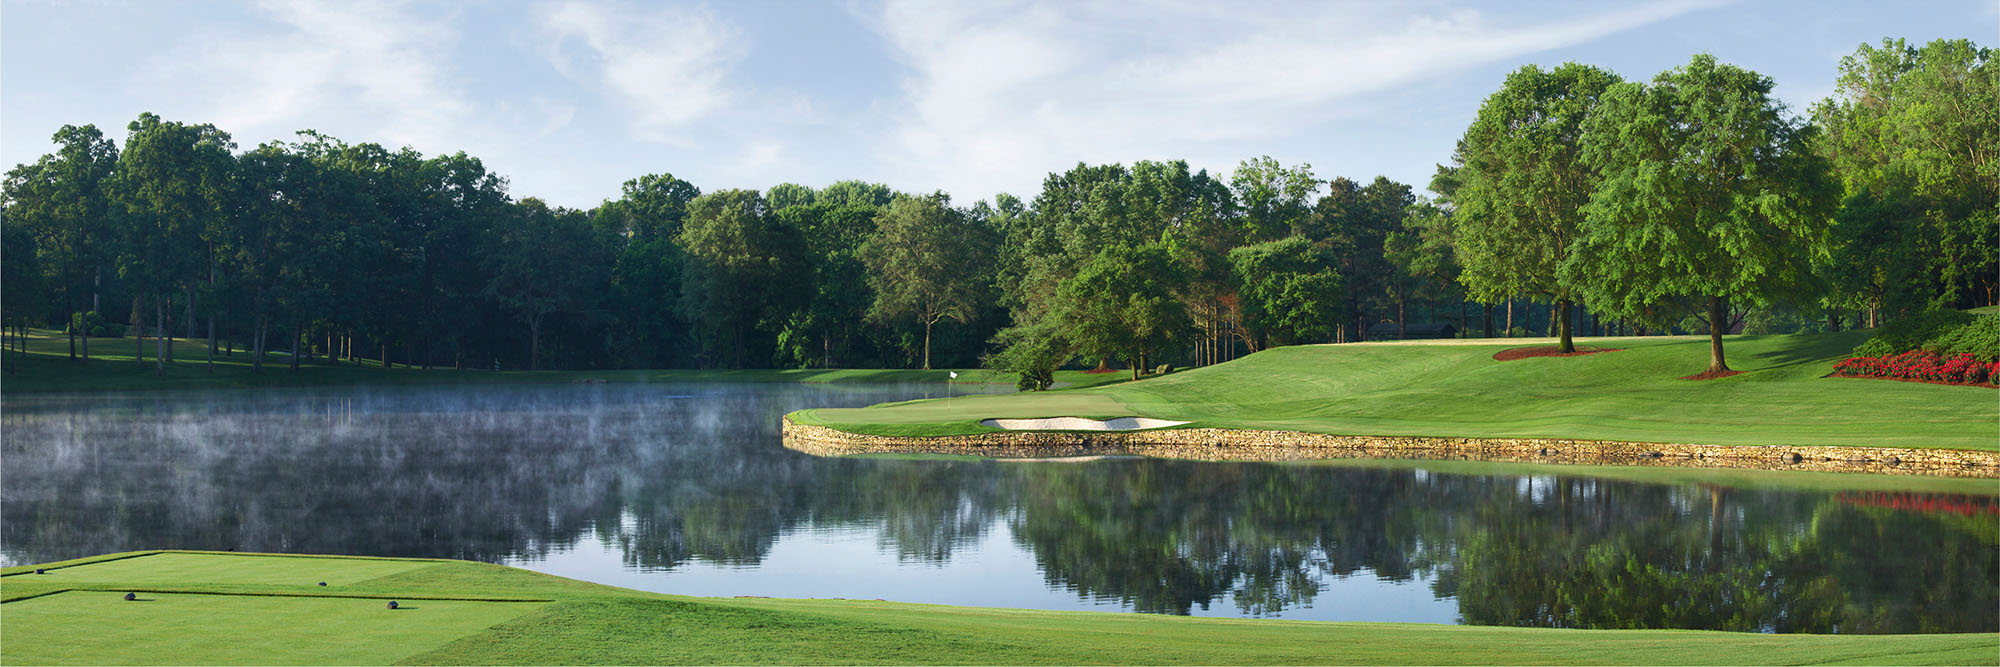 Golf Course Image - Quail Hollow No. 17